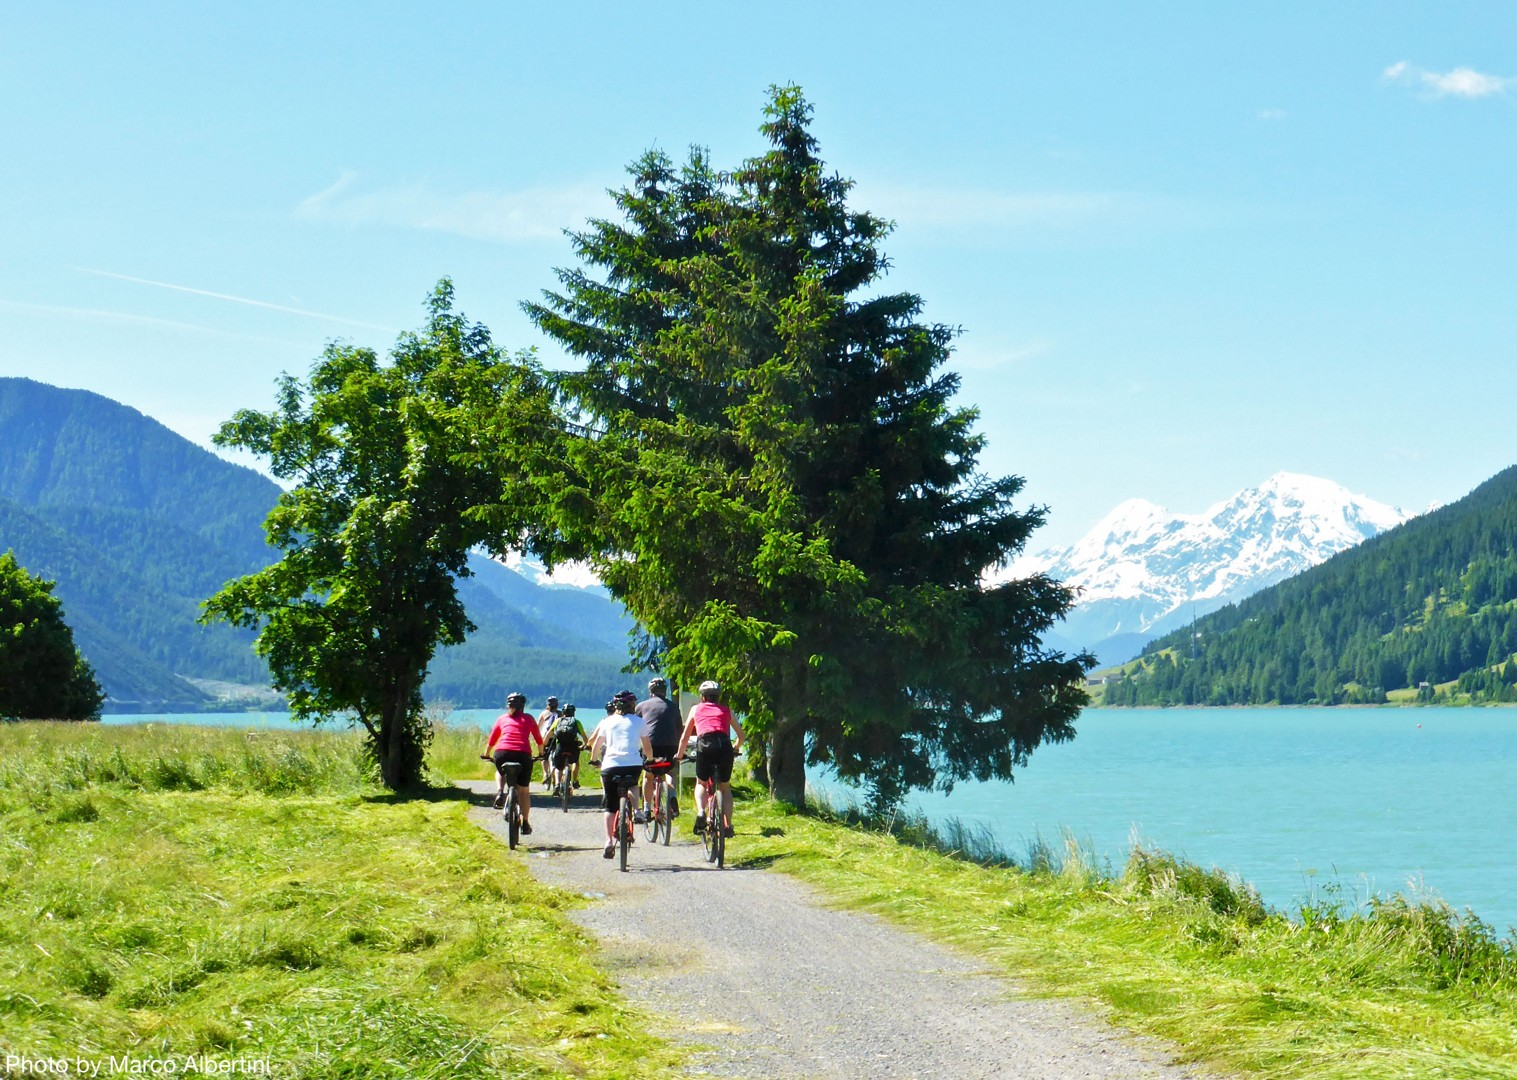 italian-guided-leisure-cycling-holiday.jpg - Austria and Italy - La Via Claudia - Guided Leisure Cycling Holiday - Italia Leisure and Family Cycling